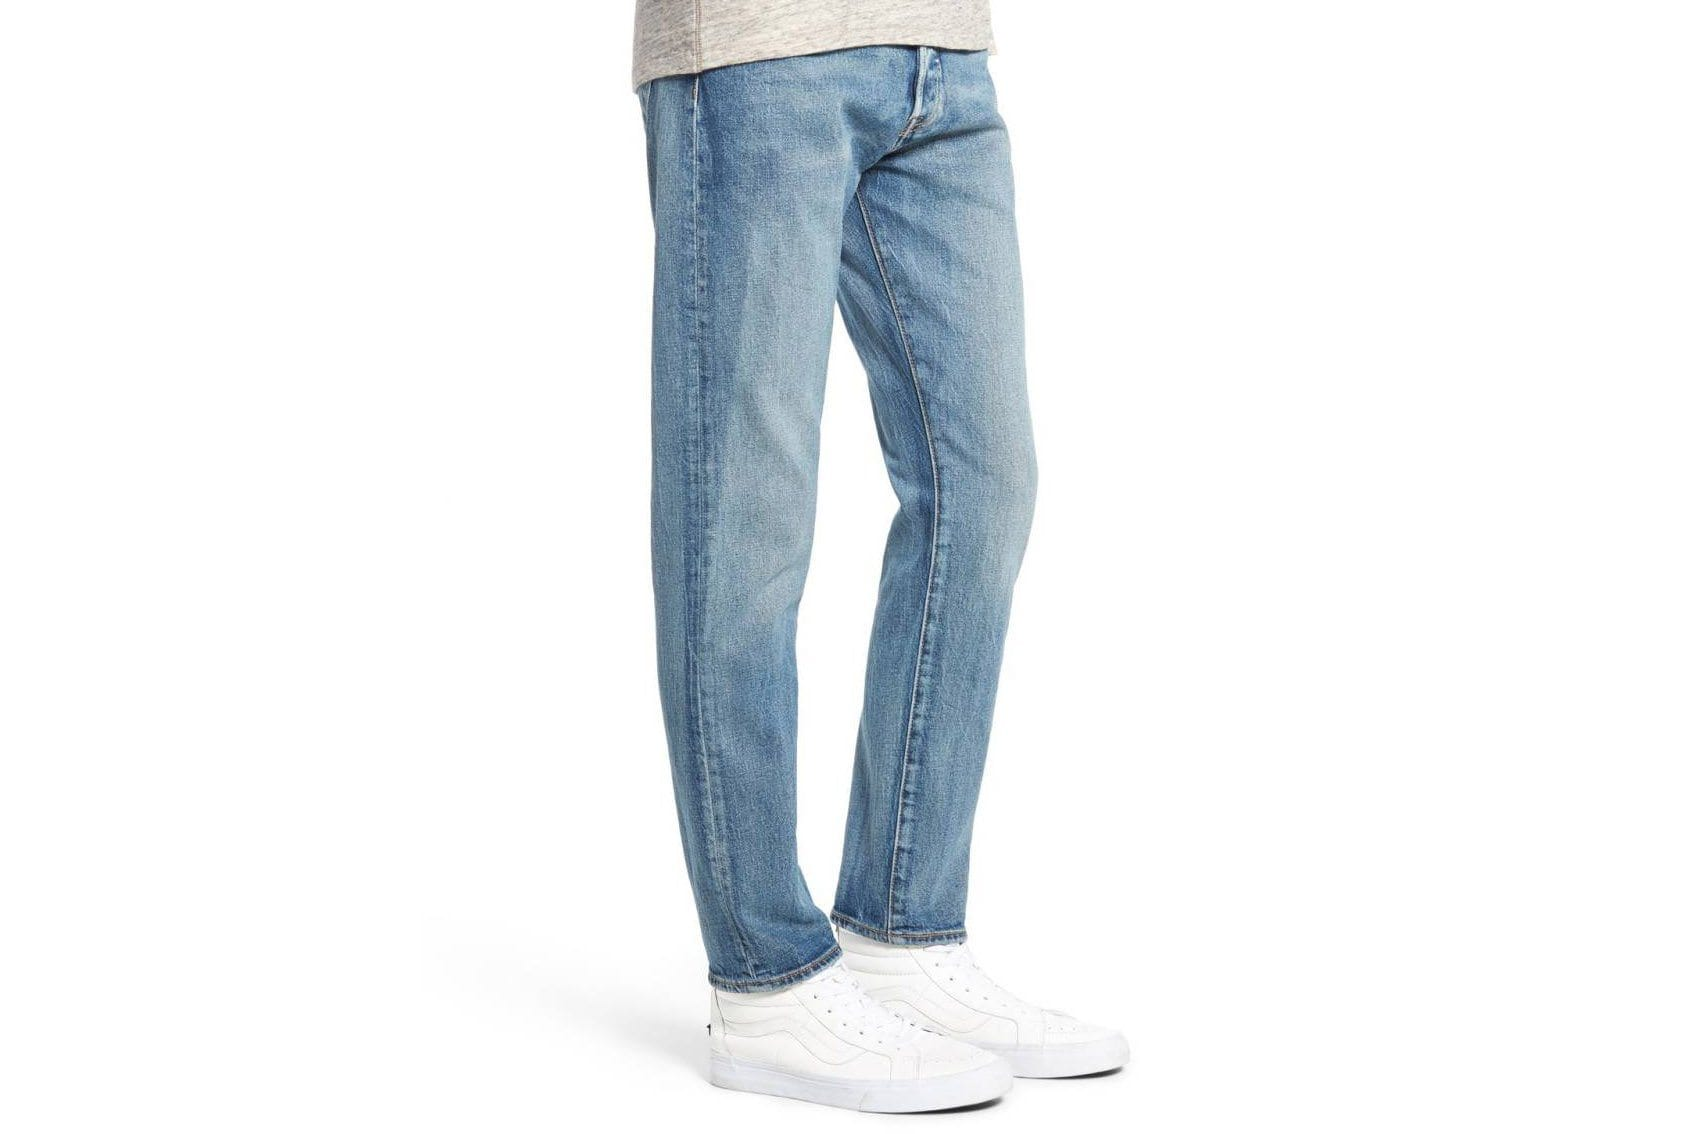 501 TAPERED DILLINGER MENS SOFTGOODS LEVIS